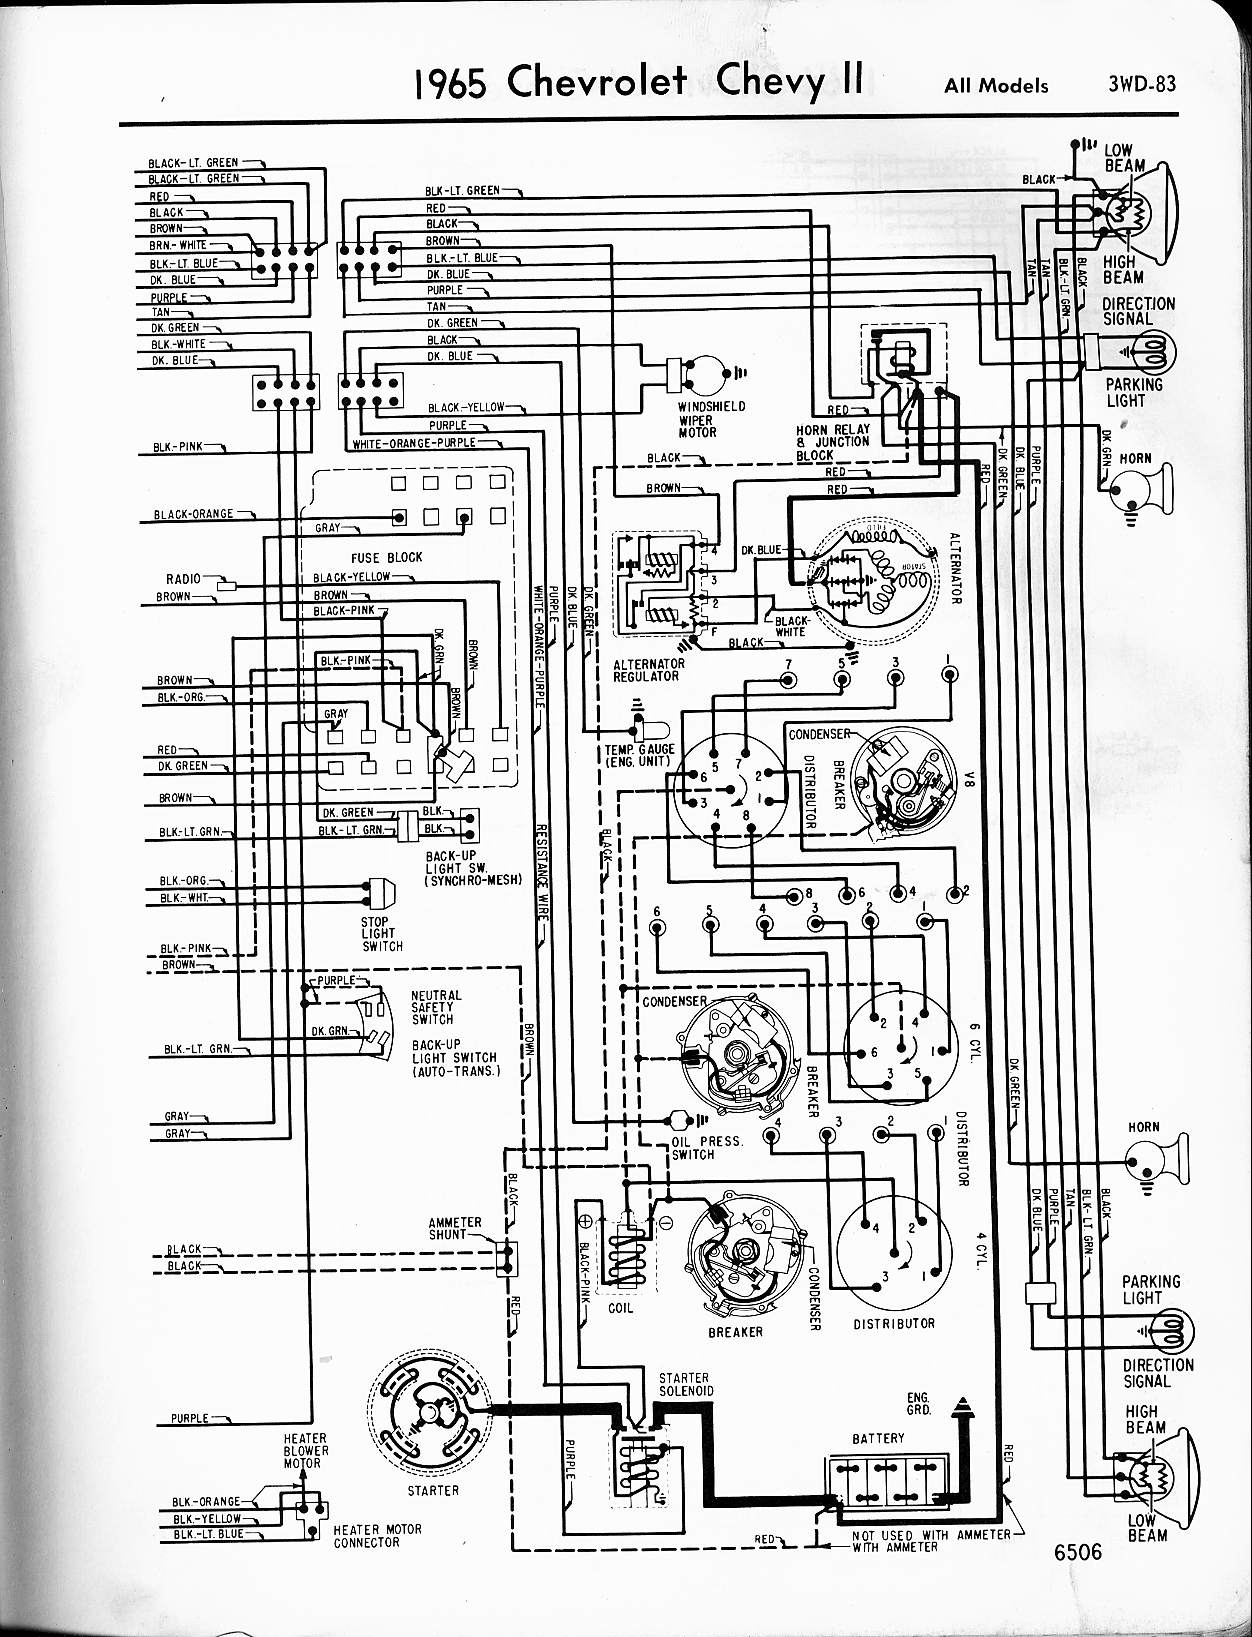 71 F250 Steering Column Diagram Great Installation Of Wiring 1971 Ford Truck Library Rh 3 Informaticaonlinetraining Co 1997